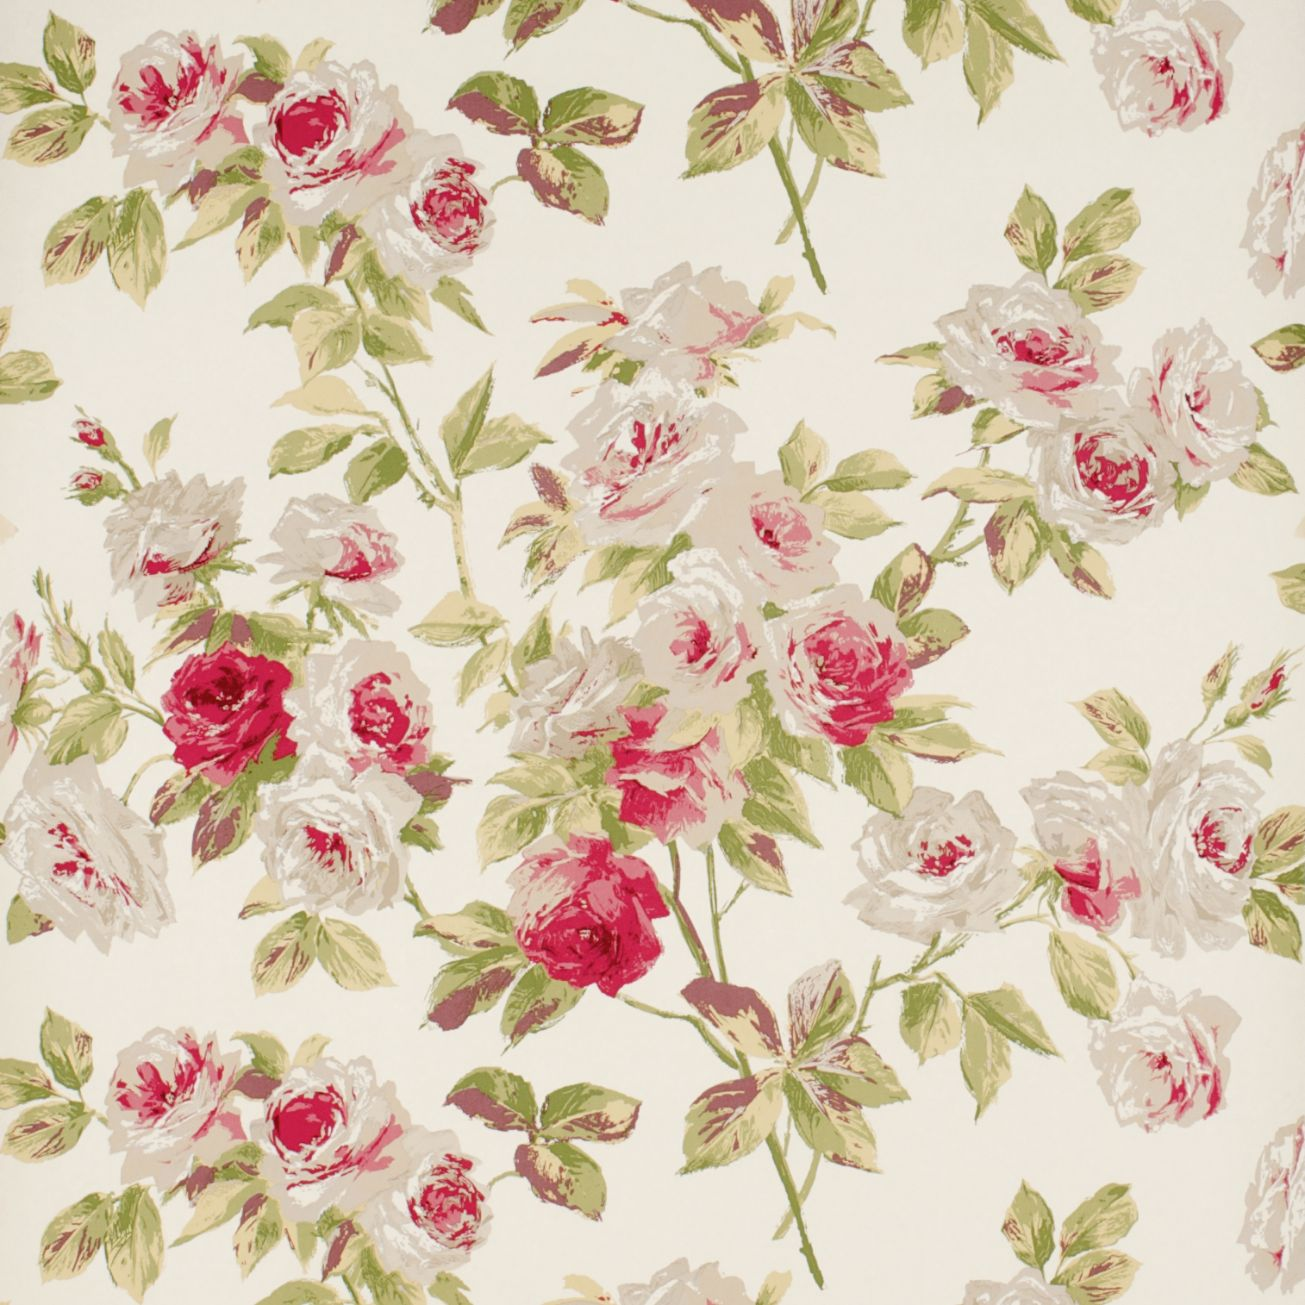 46 Vintage Roses Wallpaper On Wallpapersafari